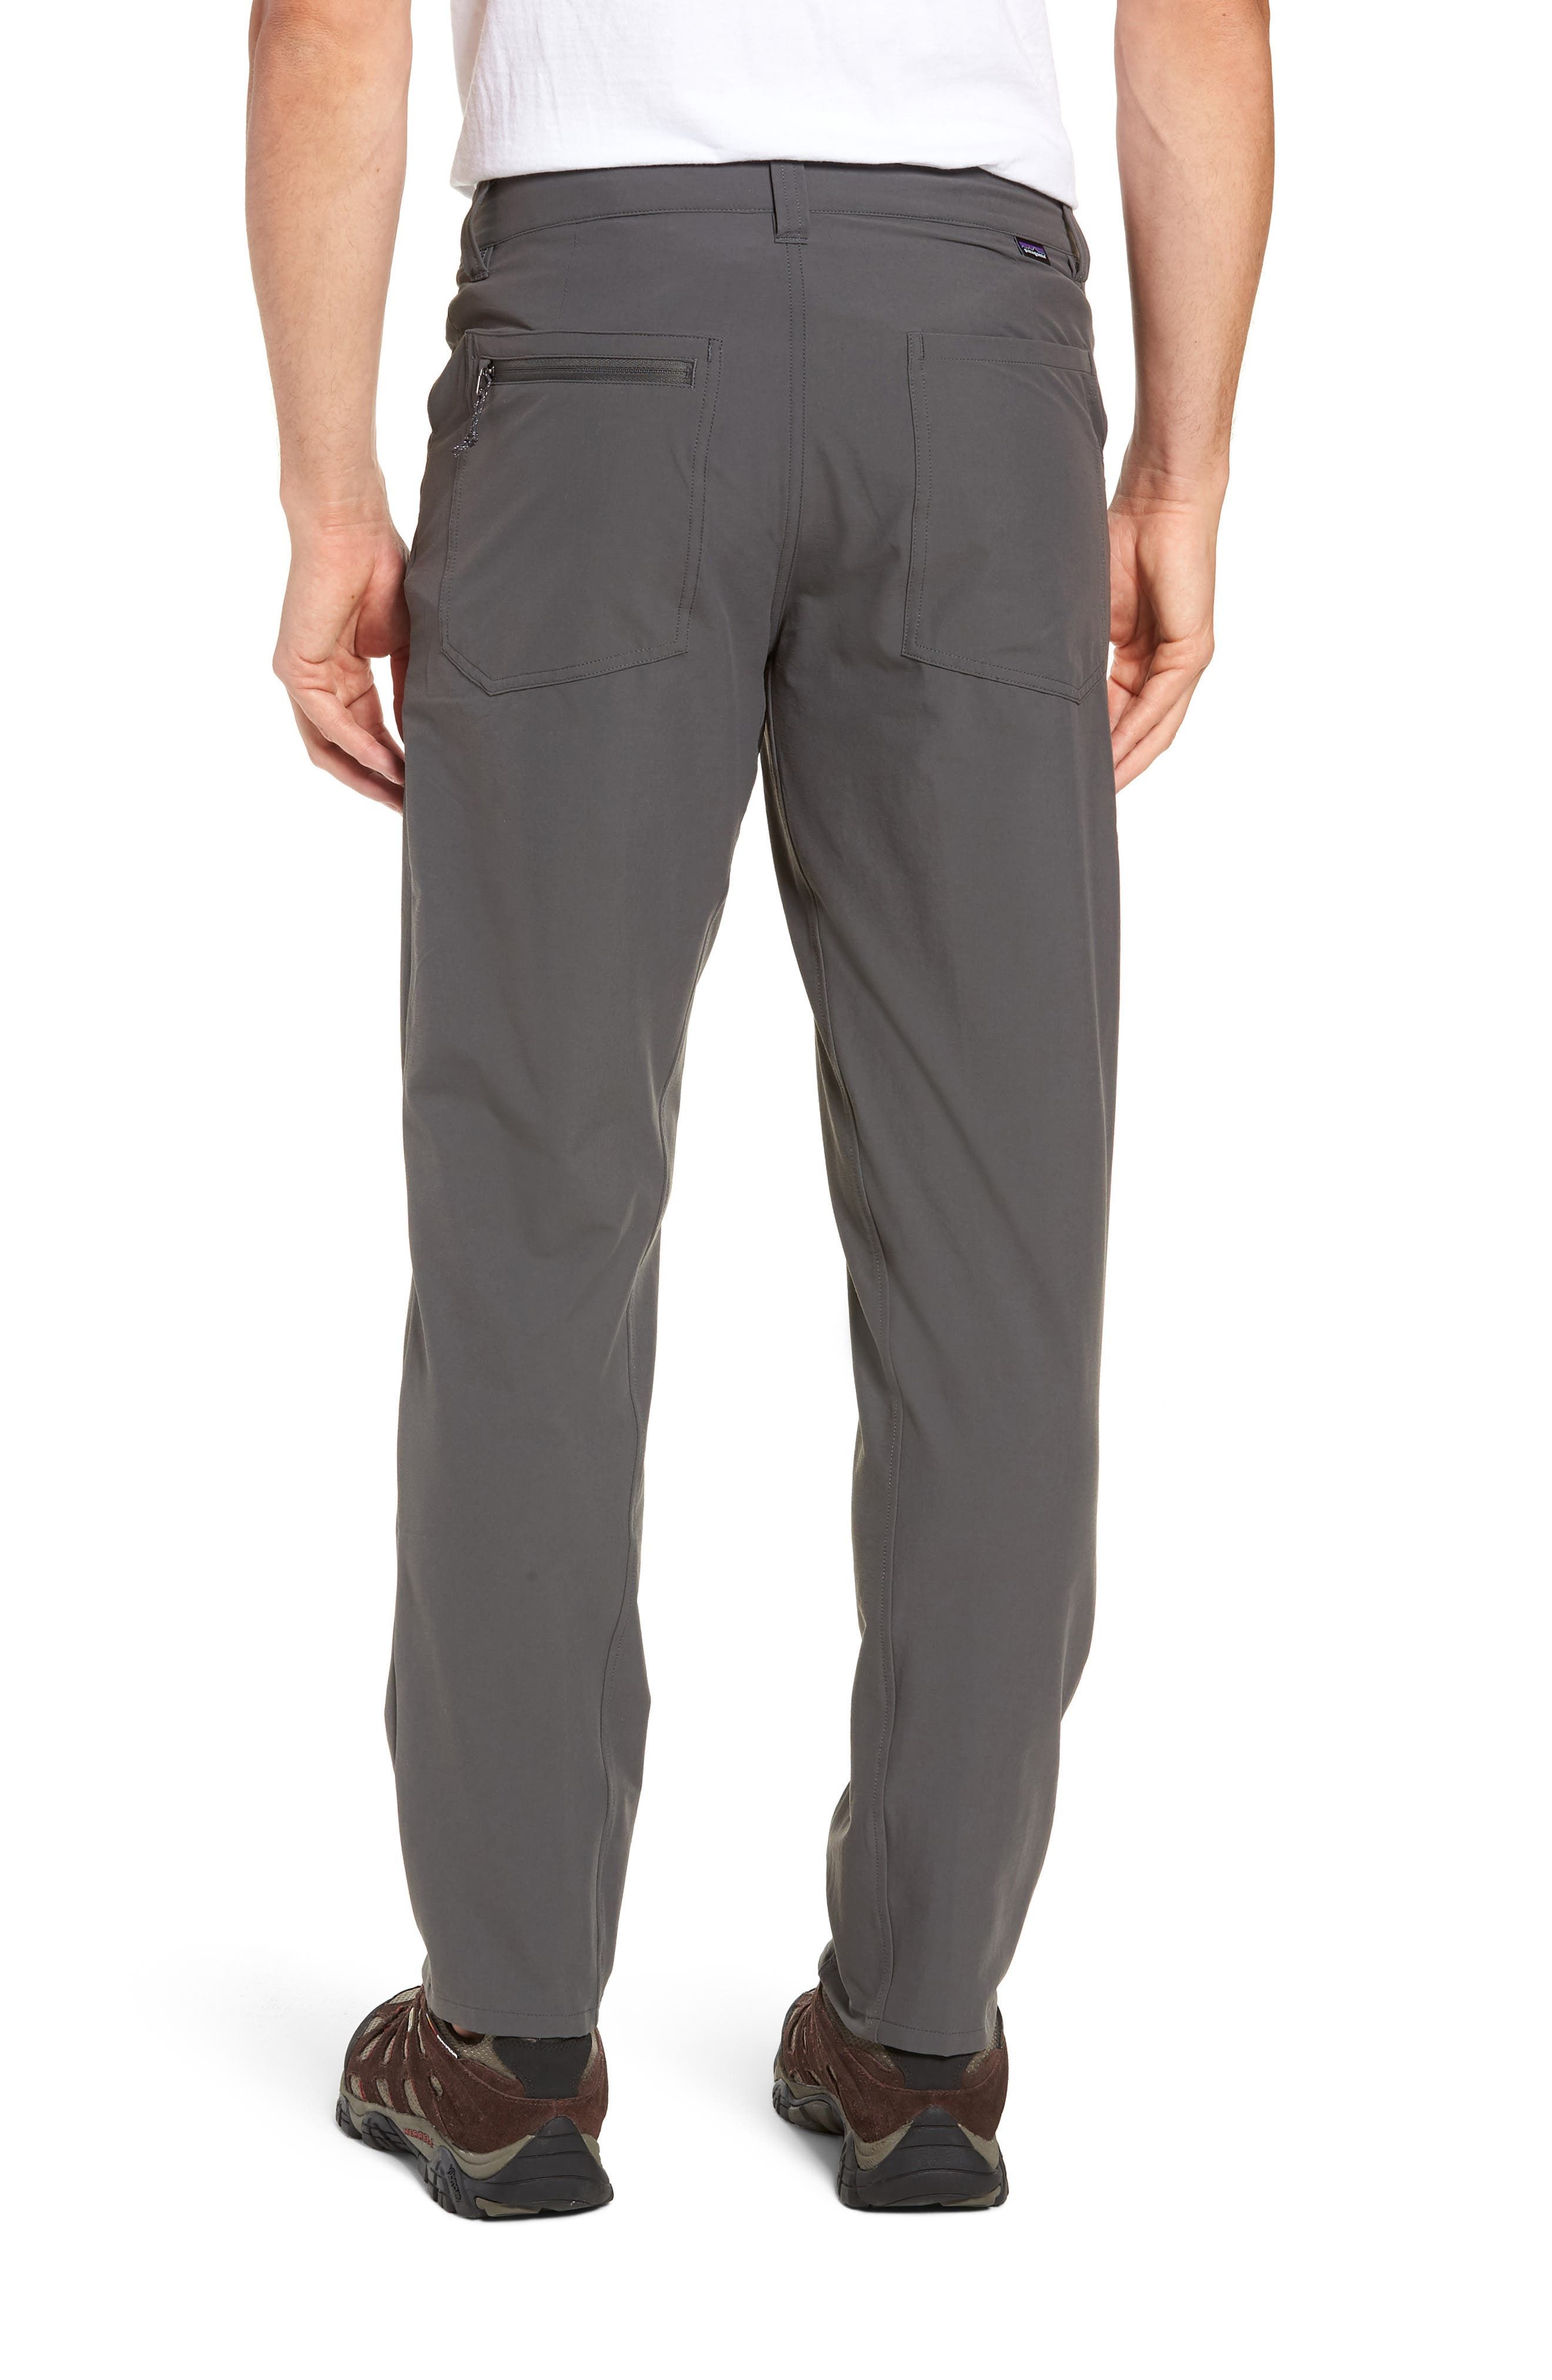 Quandary Pants,                             Alternate thumbnail 2, color,                             FORGE GREY